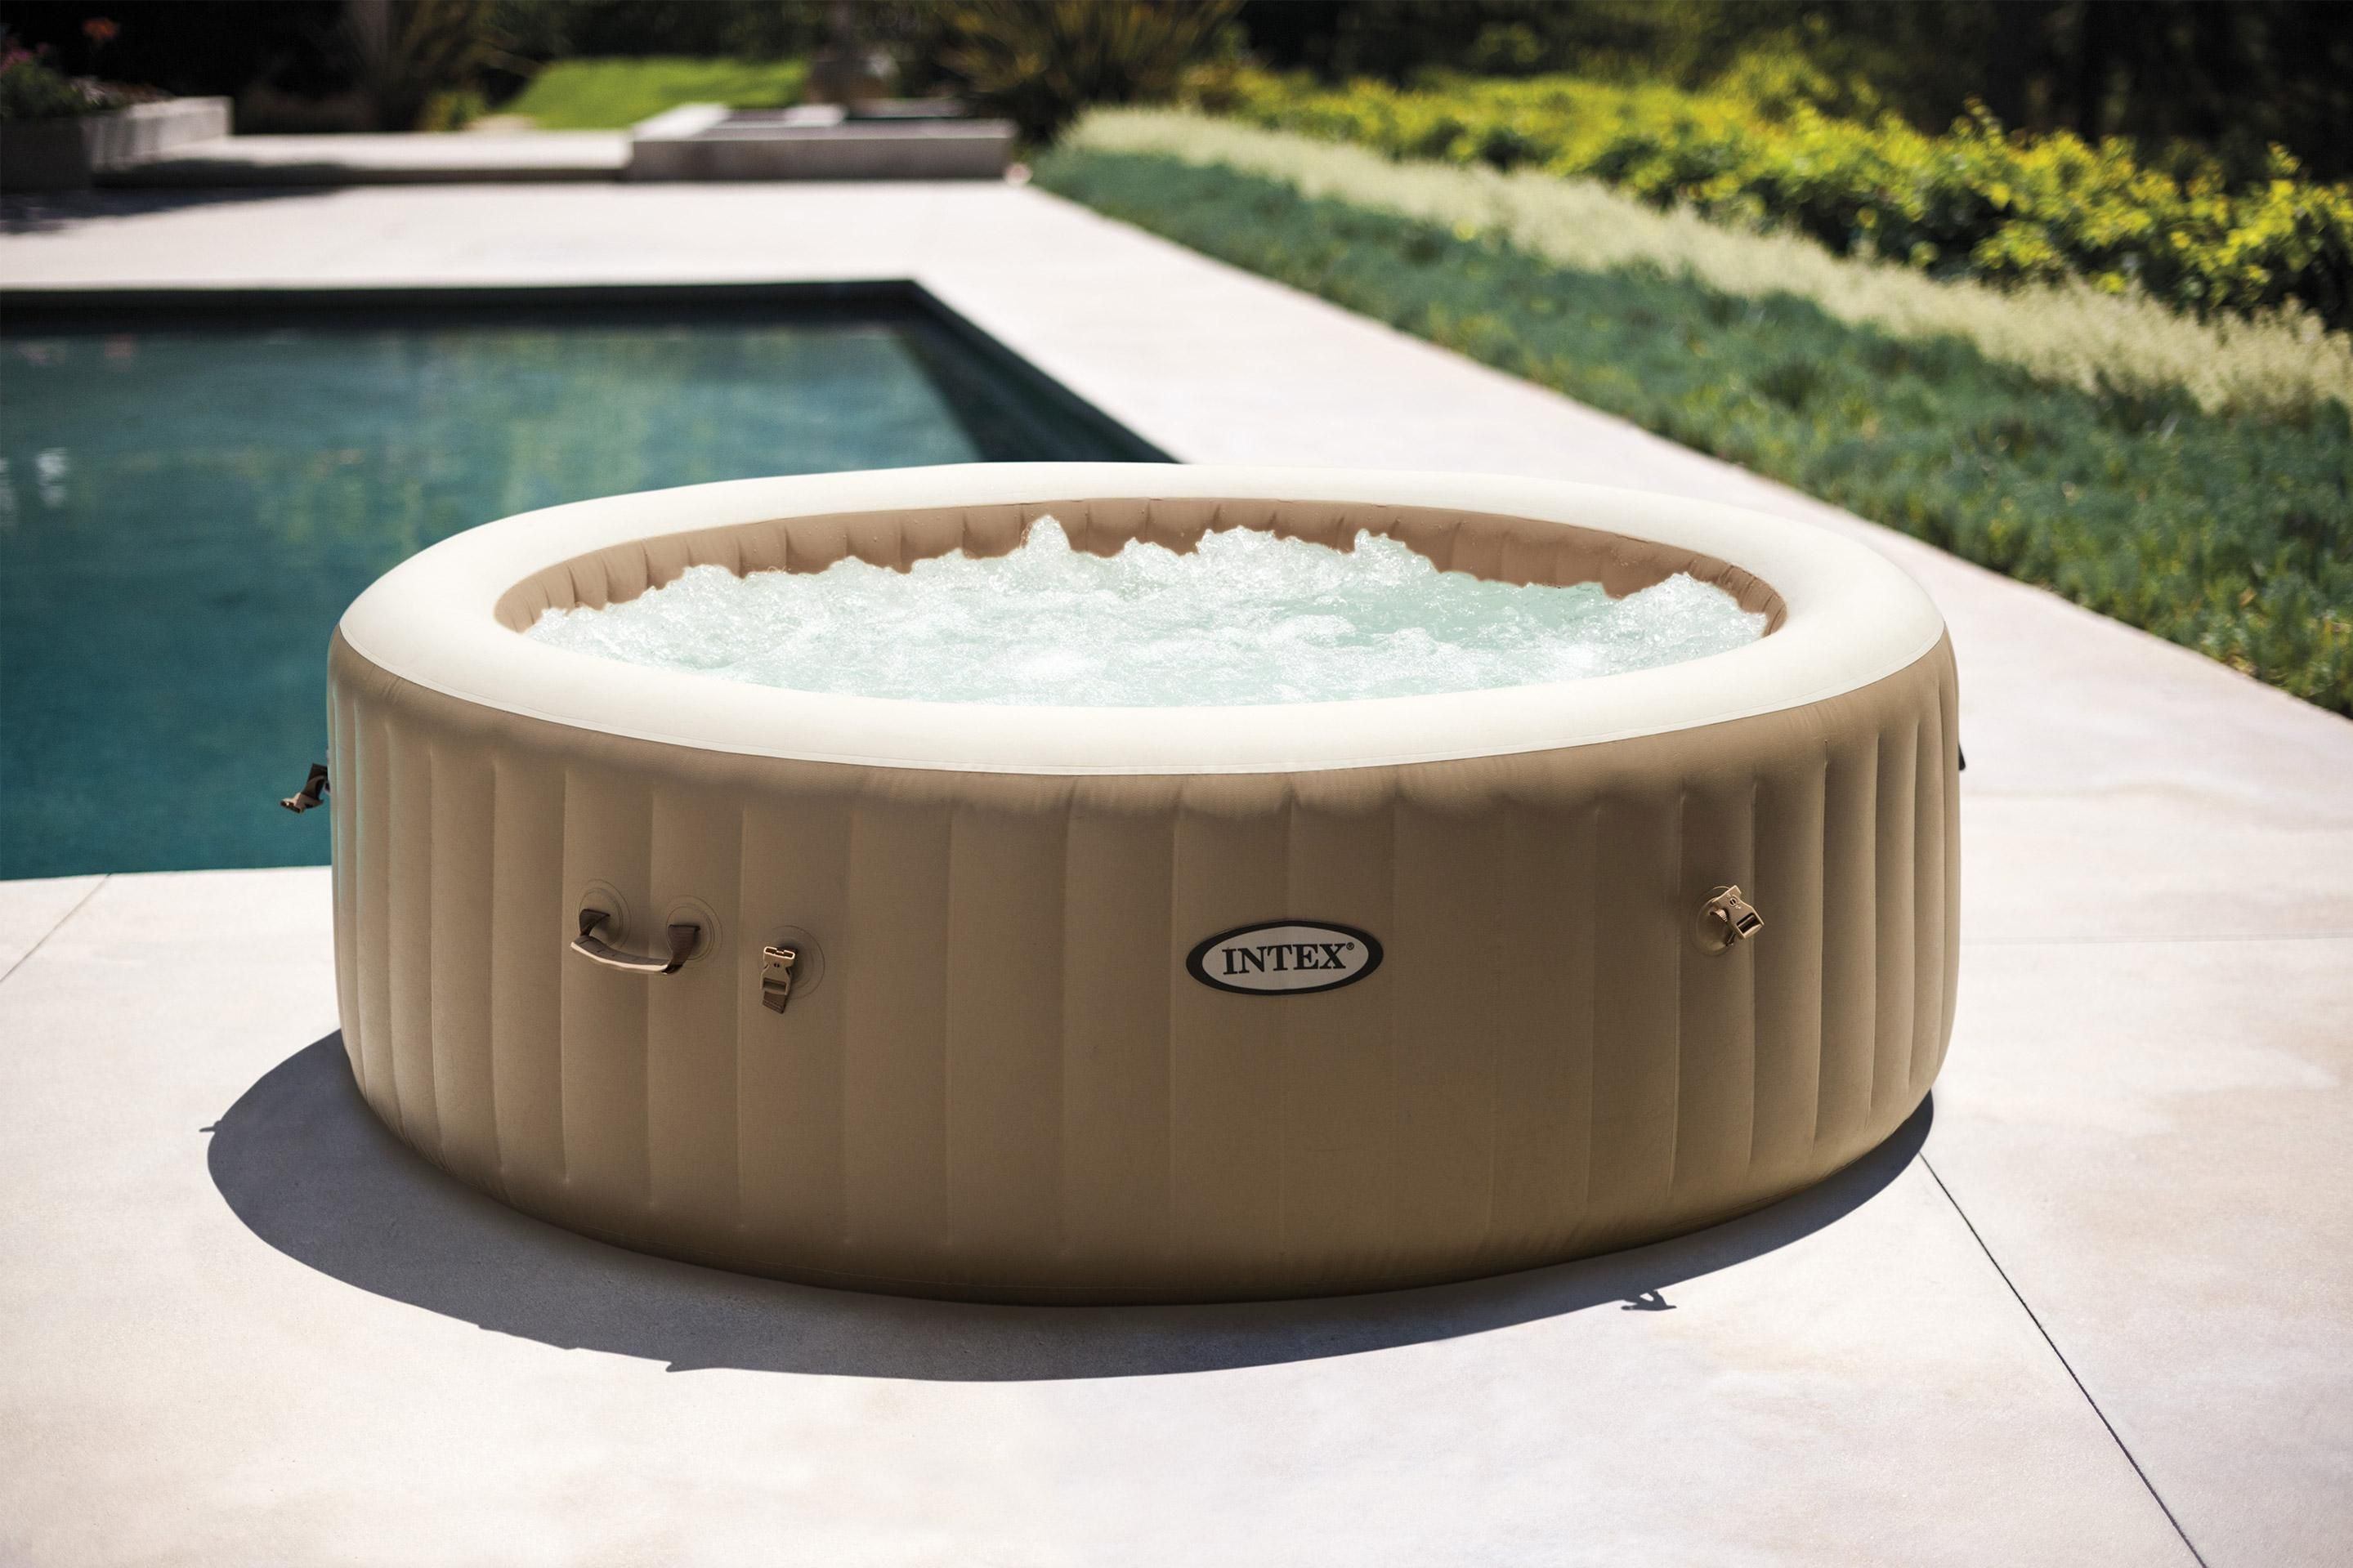 Jacuzzi 6 Places Leroy Merlin spa gonflable intex sahara rond en 2020 | spa gonflable